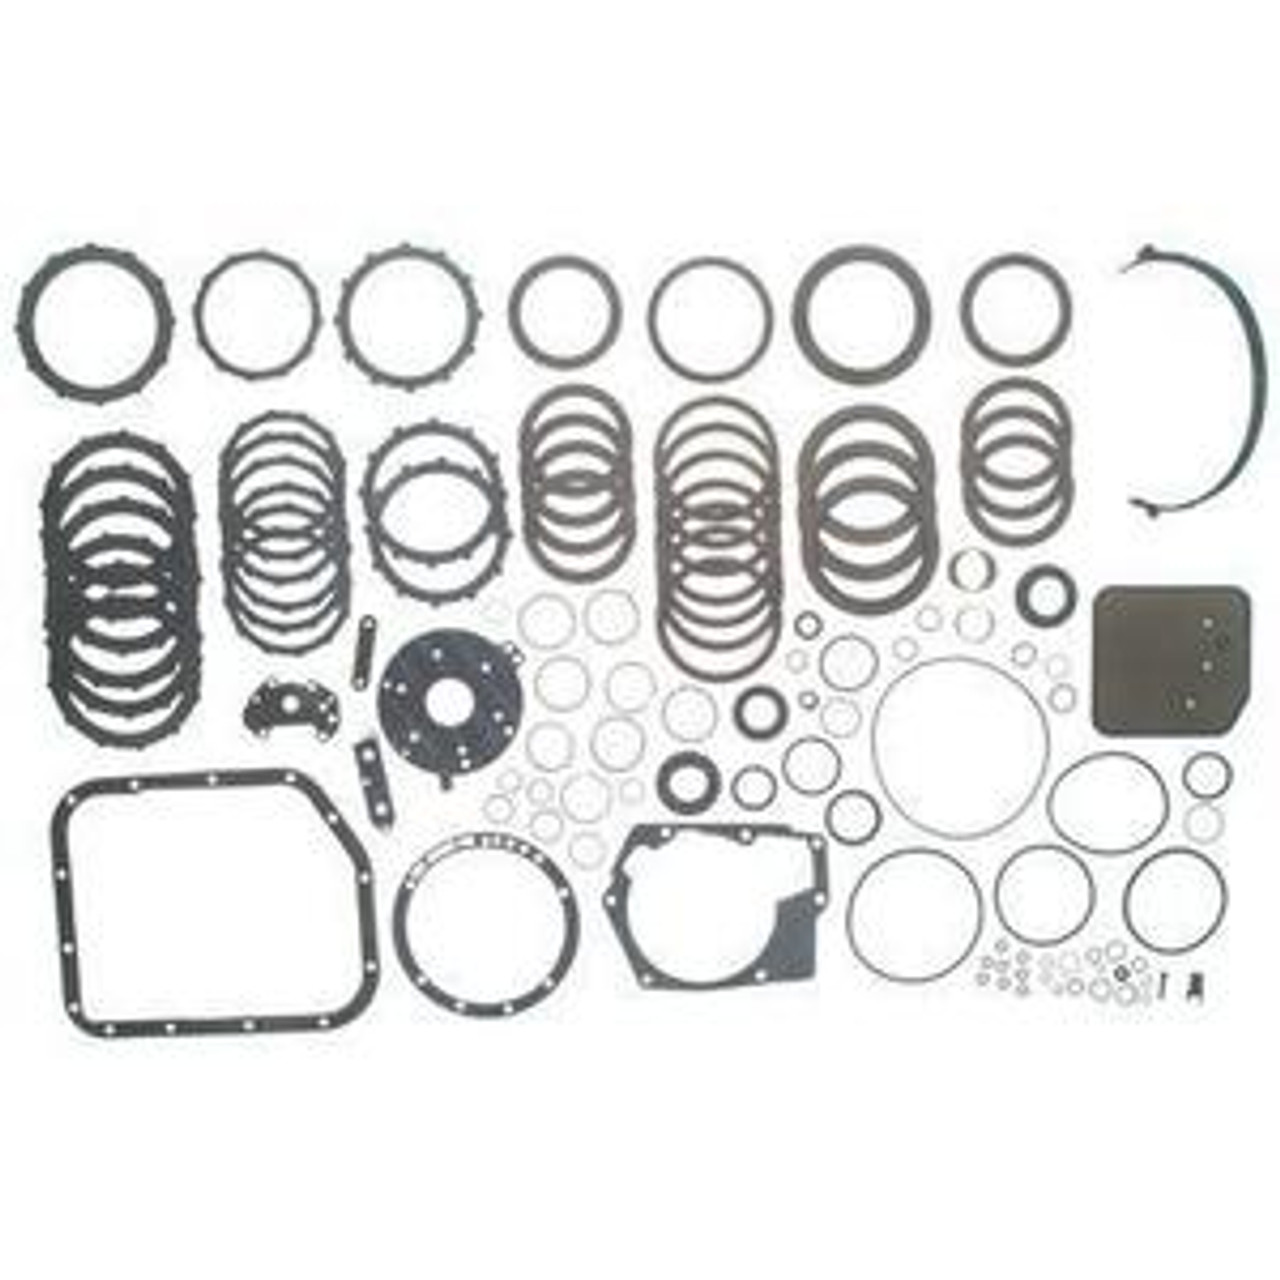 Transtec Overhaul Kit A500 42RE 42RH 44RE 88-04